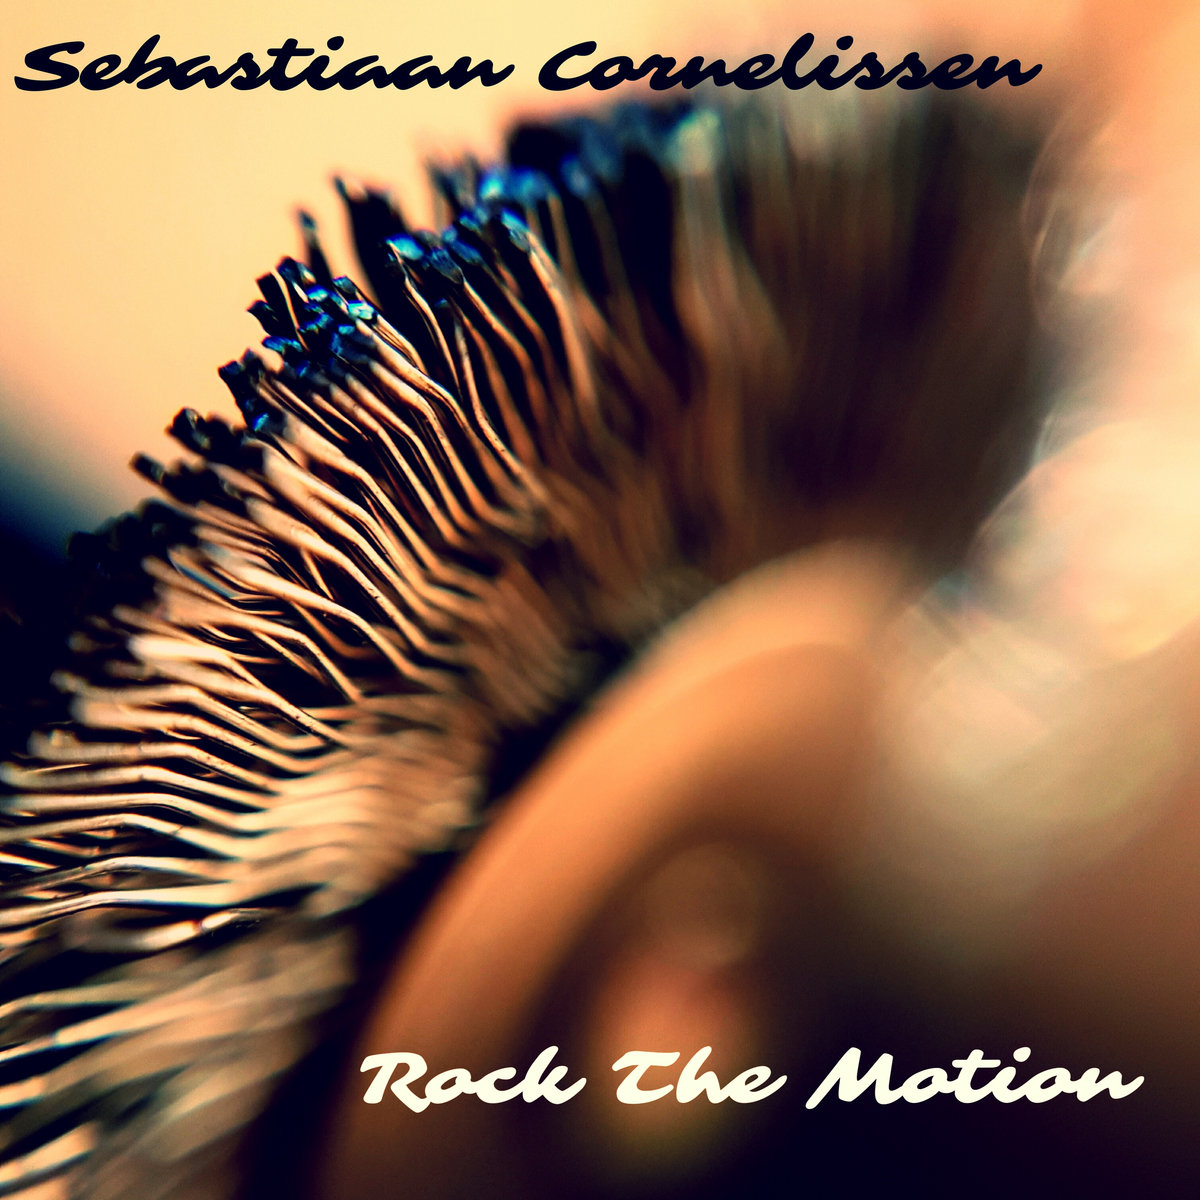 New album Sebastiaan Cornelissen - Rock the Motion